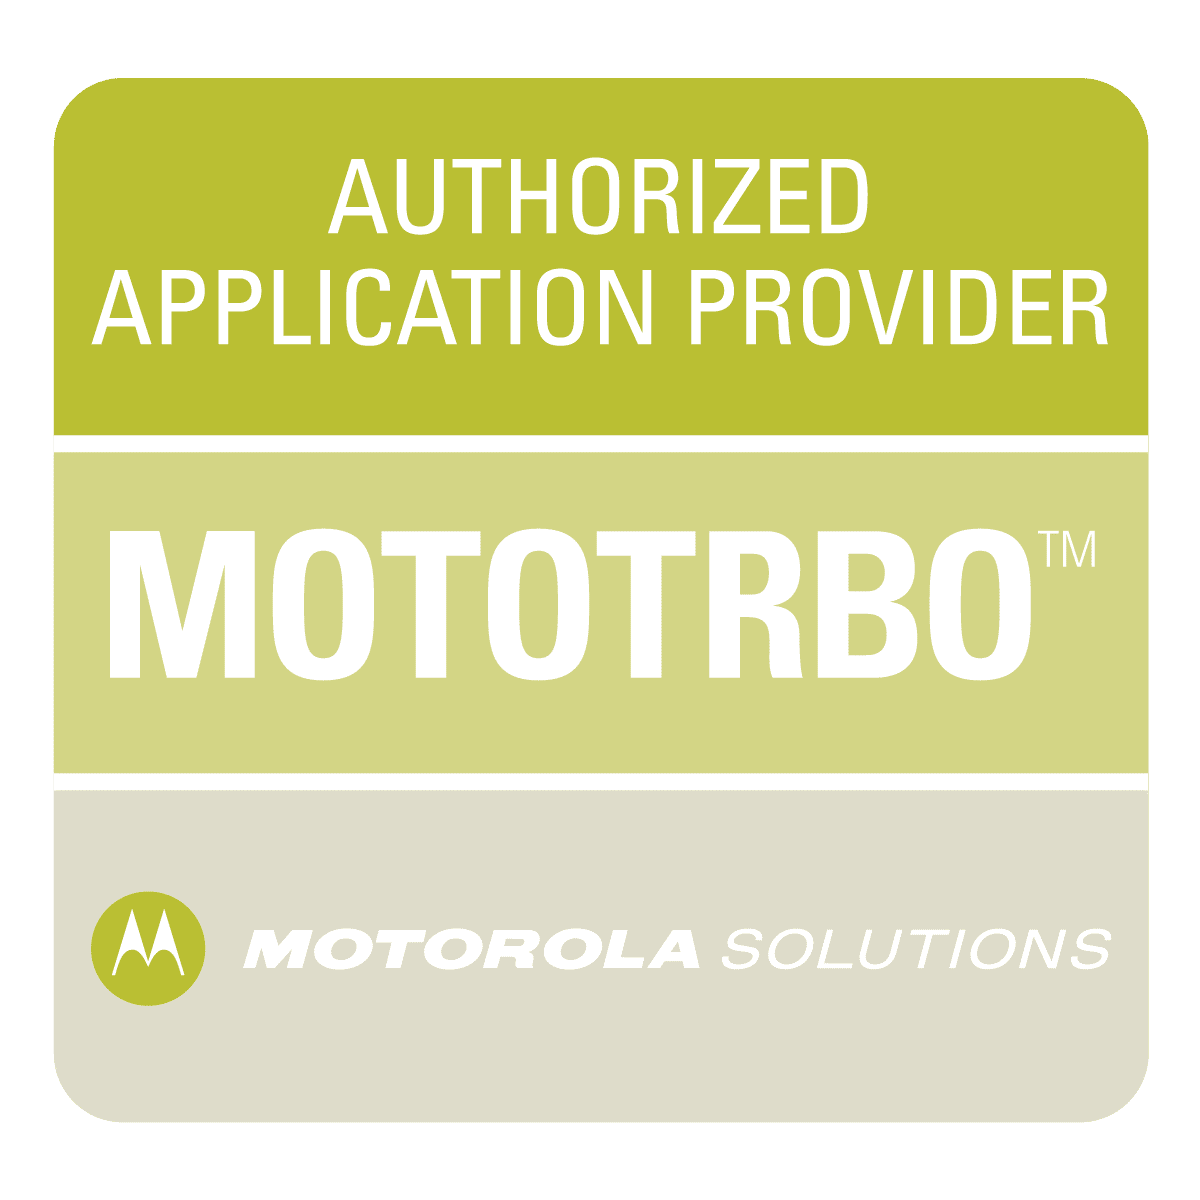 Authorized Application Provider MOTOTRBO